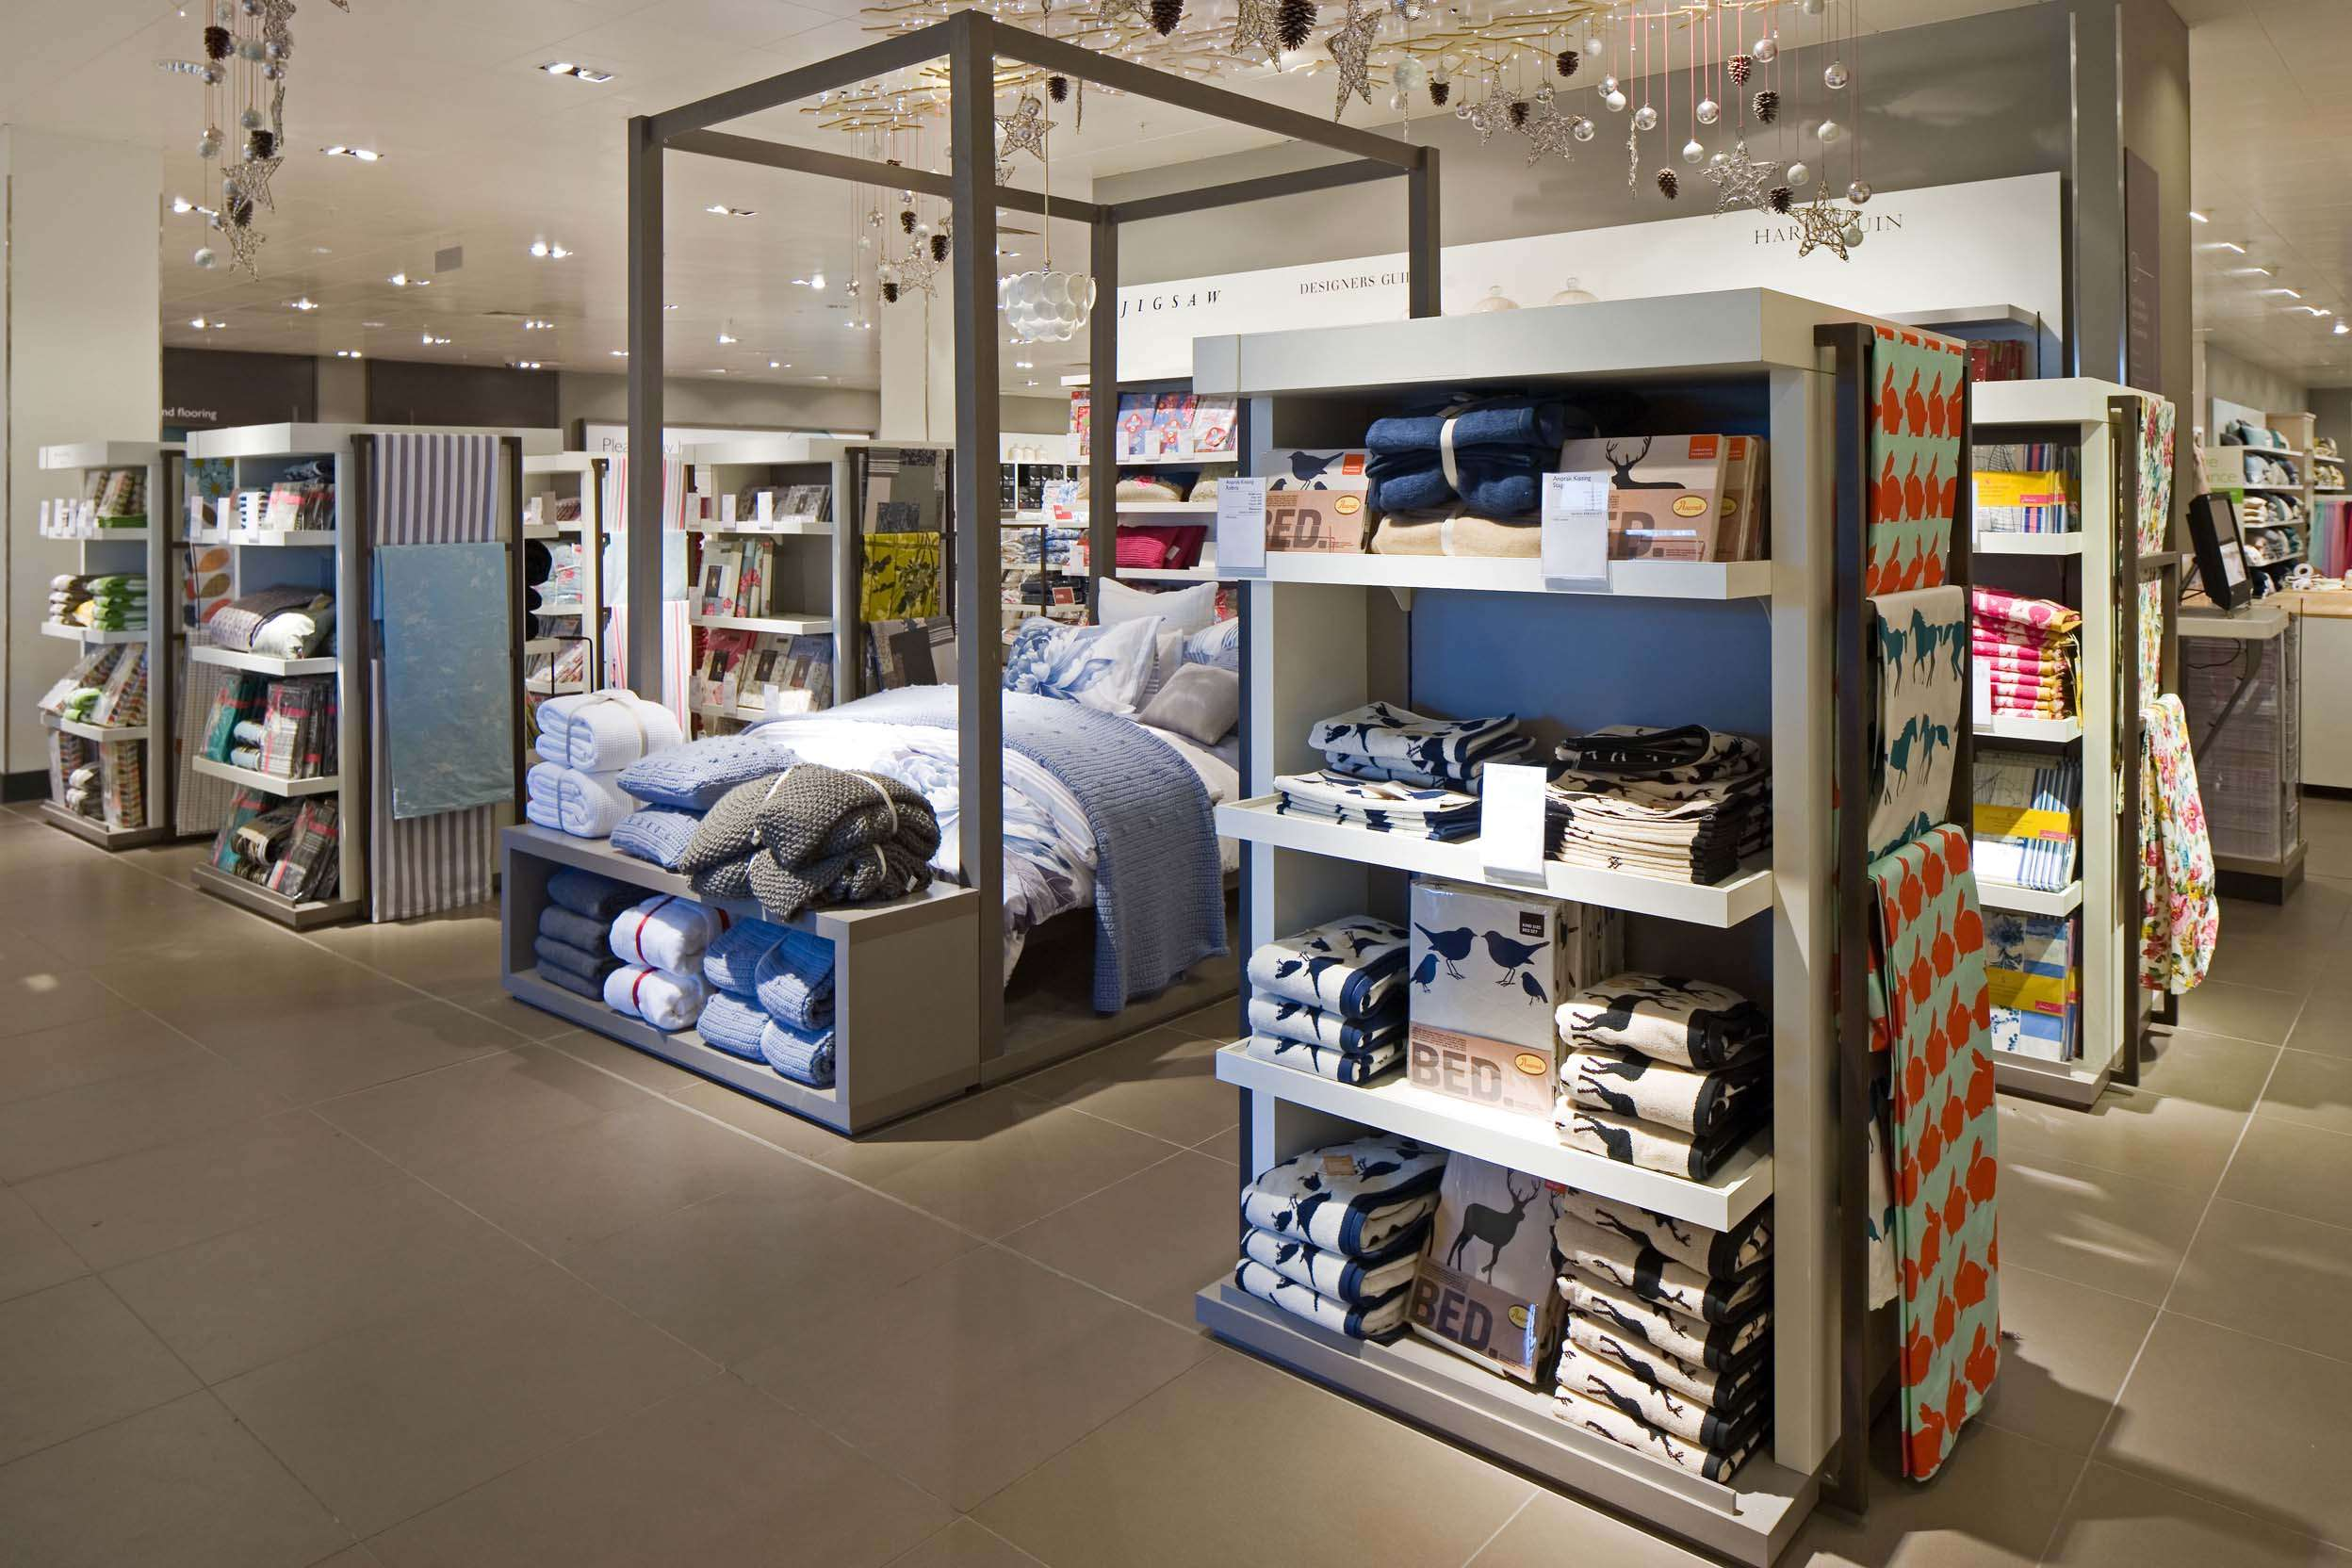 Photographer John Lewis Milton Keynes Beds Department